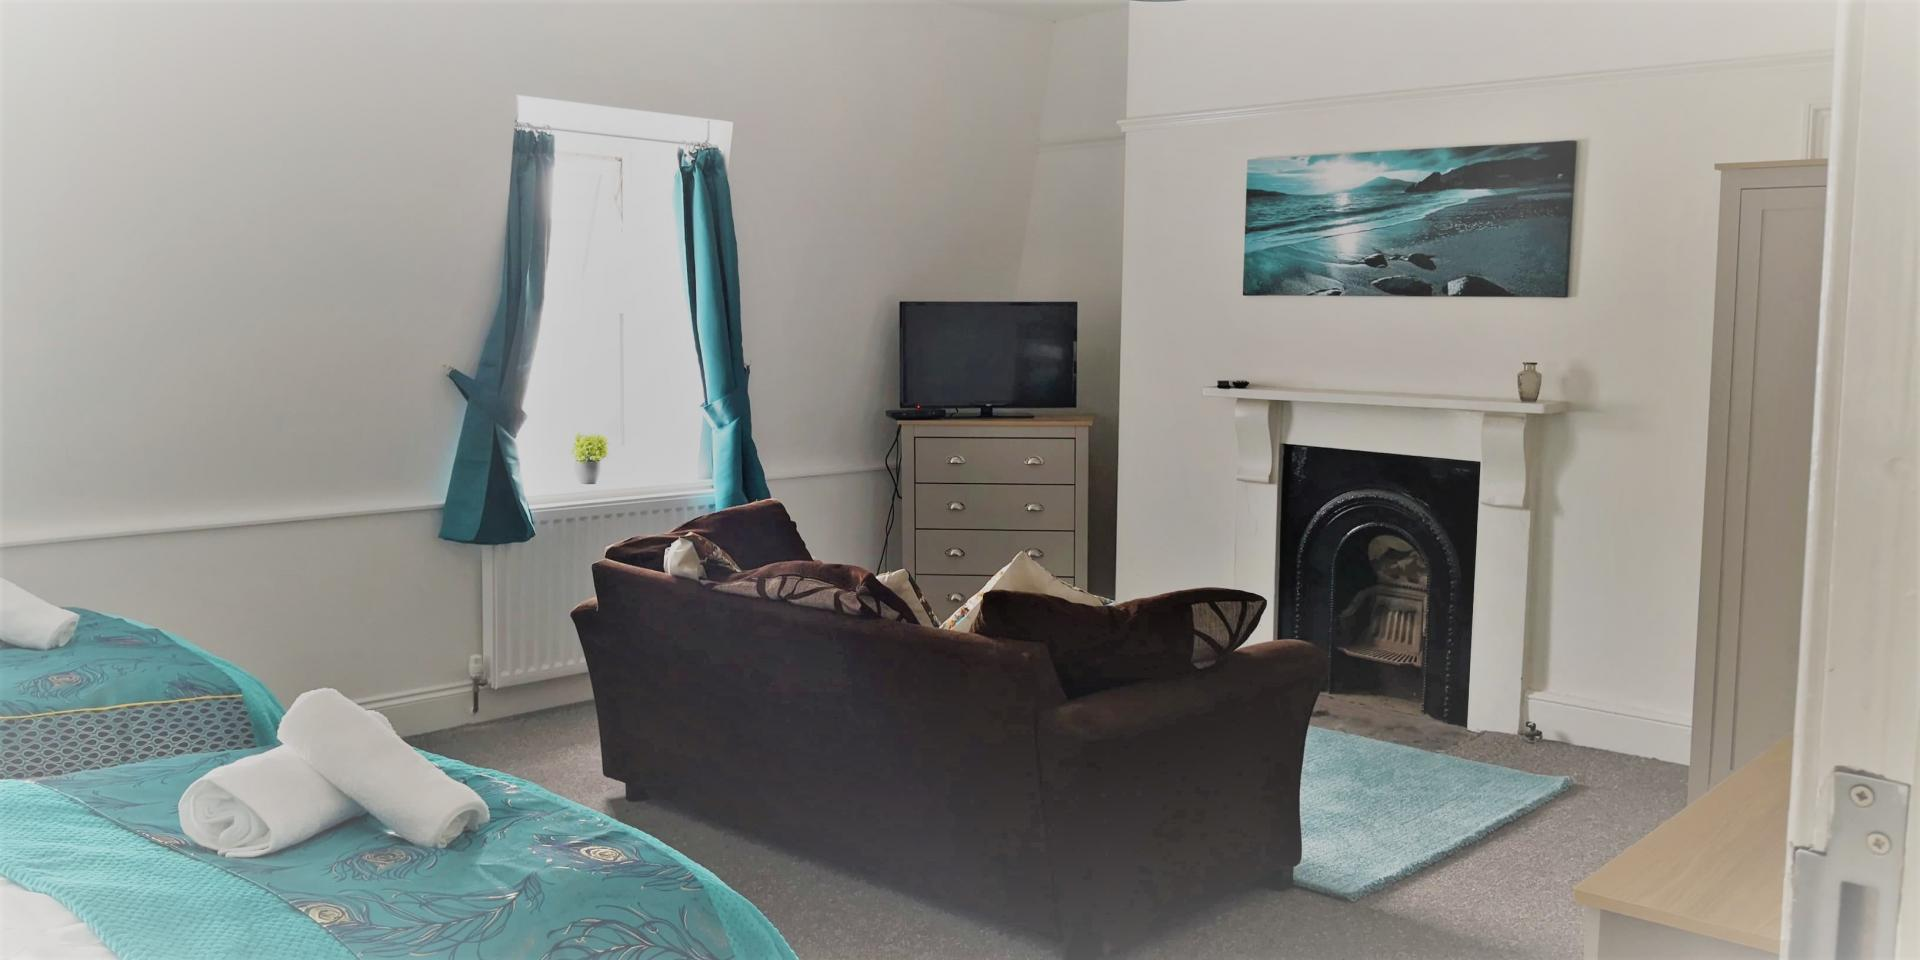 Main Bedroom at Nicks Place Apartment, Mutley, Plymouth